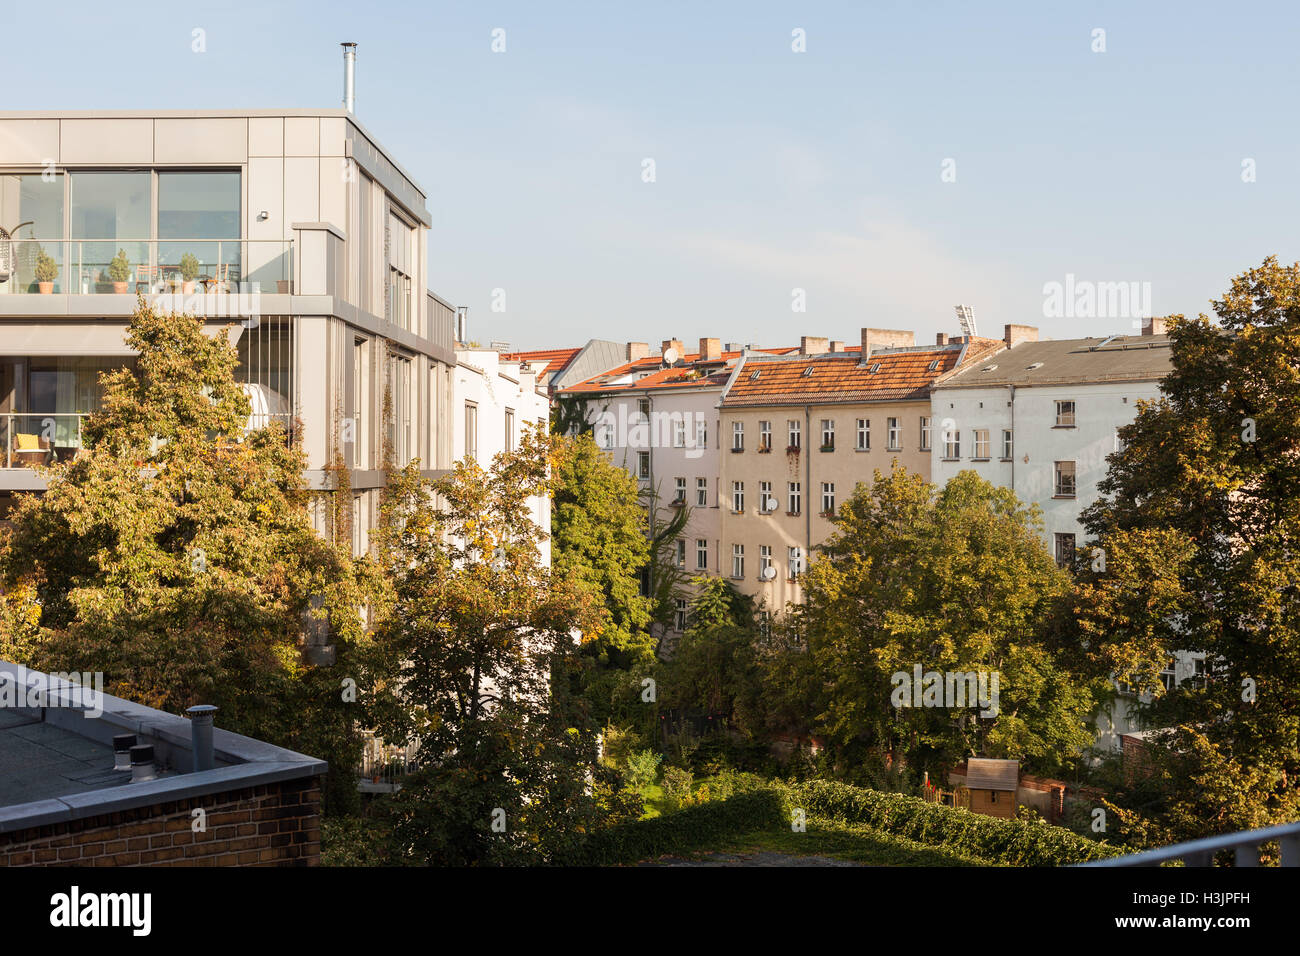 A mix of new and old apartments in Berlin's Prenzlauer Berg neighborhood Stock Photo